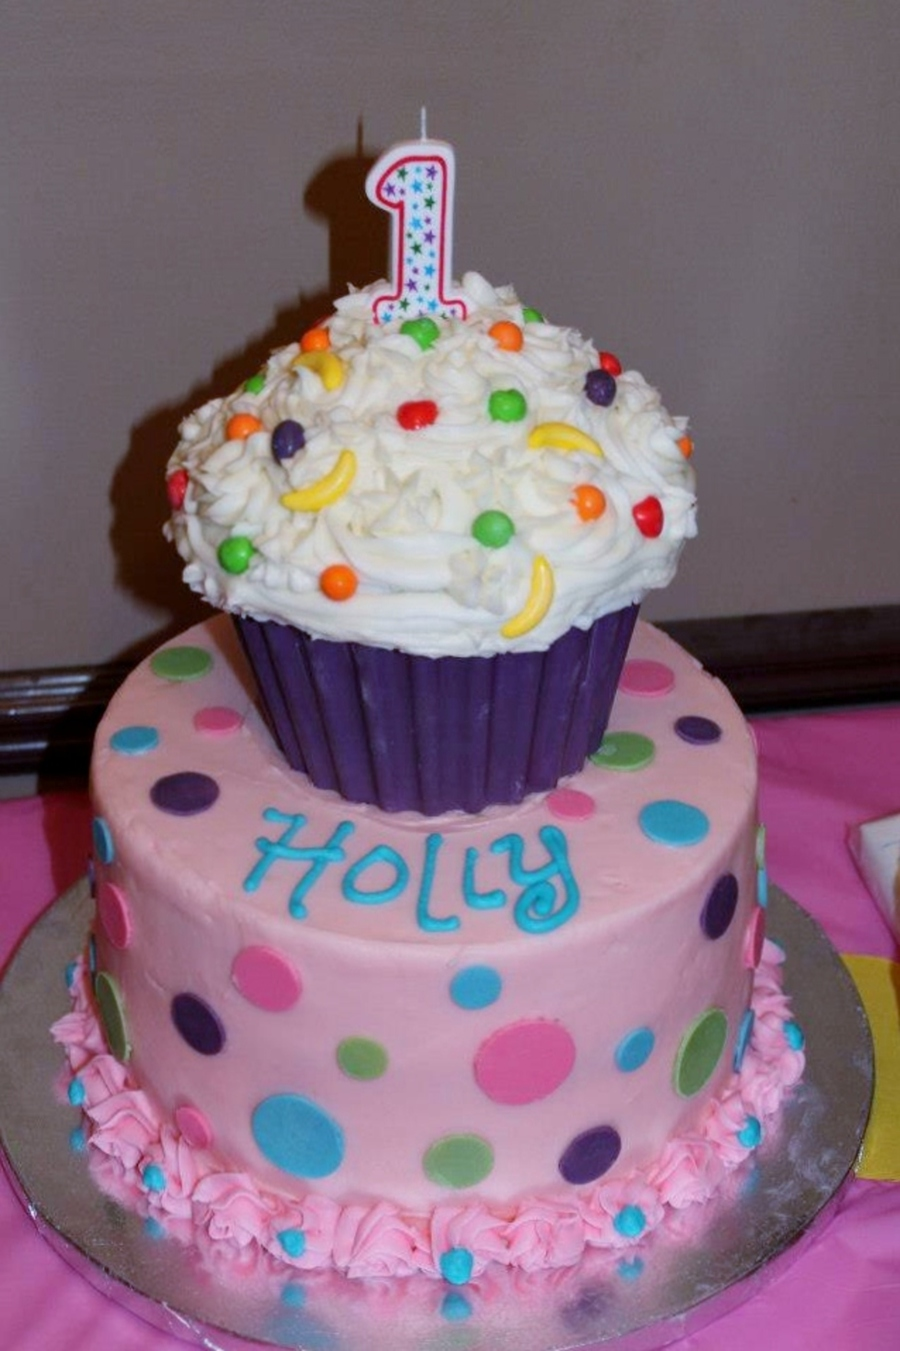 900 6102718hbs first birthday Pretty Birthday Cakes For A Girl Pink Cake With Flowers For A Baby Girl Cakecentral Com